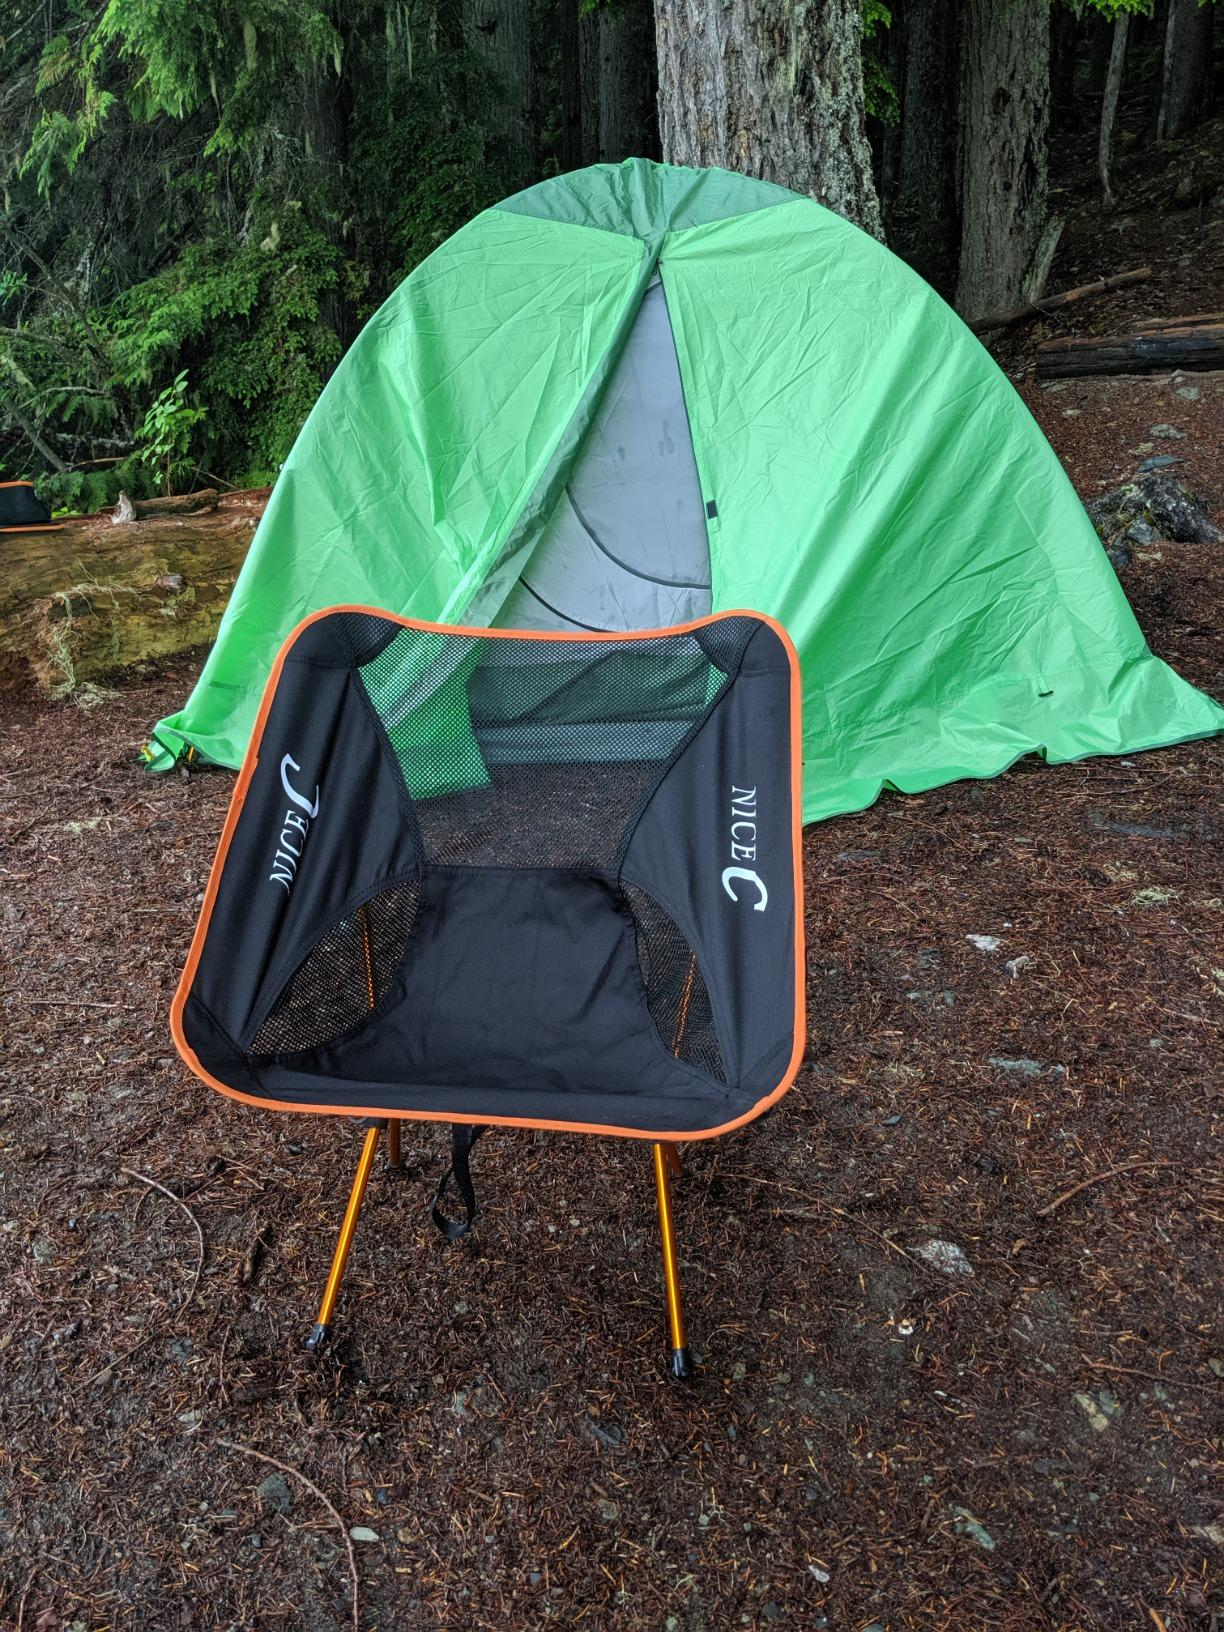 Nice C Ultralight Portable Folding Camping Backpacking Chair Compact & Heavy Duty Outdoor, Camping, BBQ, Beach, Travel, Picnic, Festival with 2 Storage Bags&Carry Bag photo review